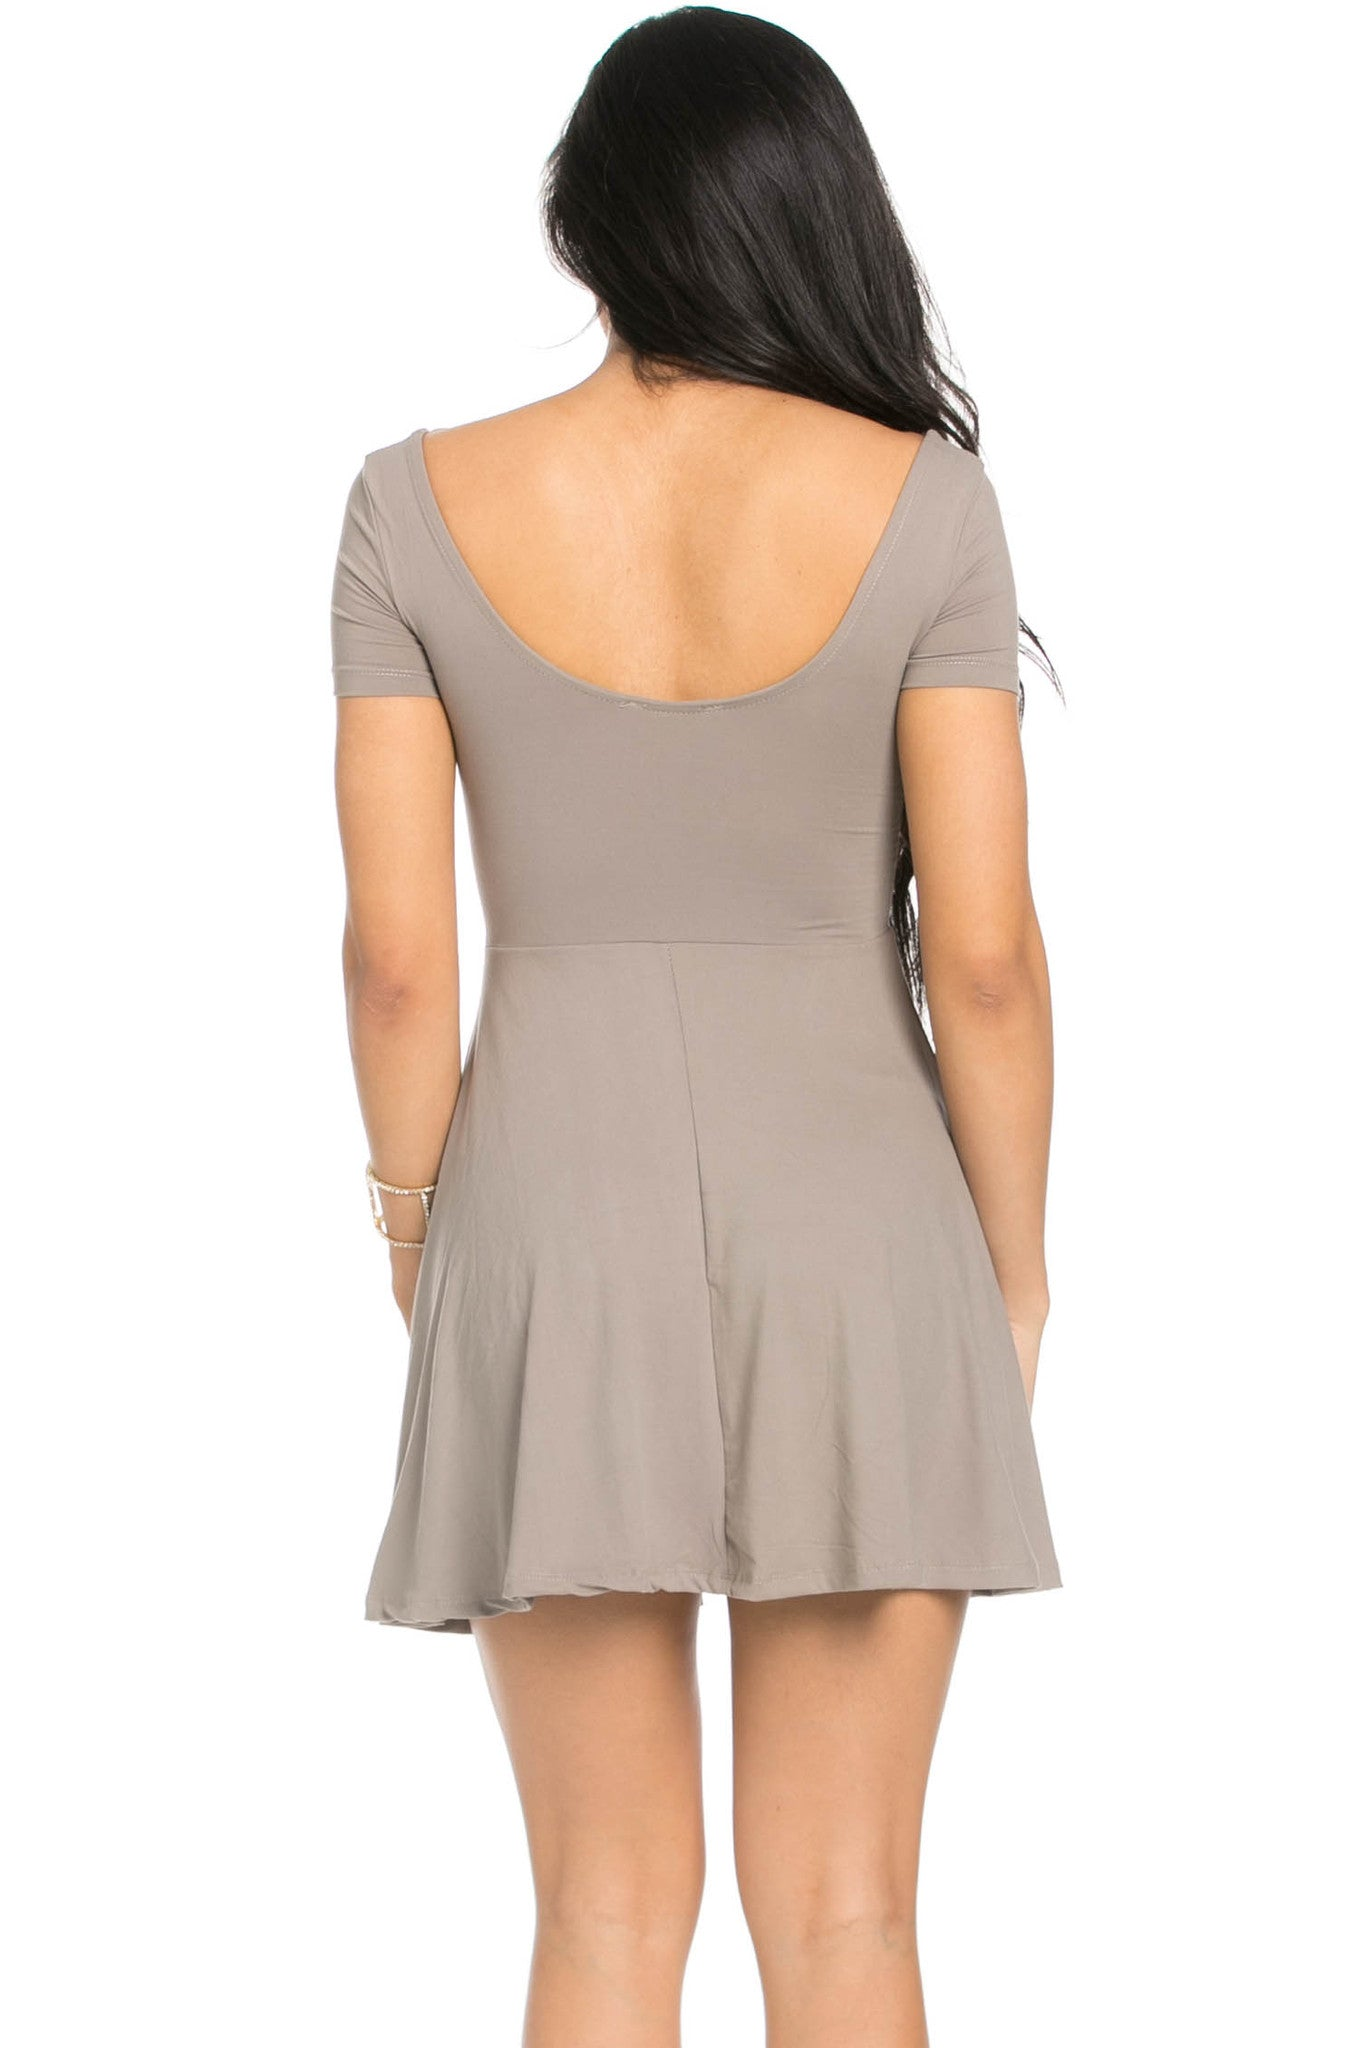 Micro Suede Taupe Mini Dress - Dresses - My Yuccie - 3